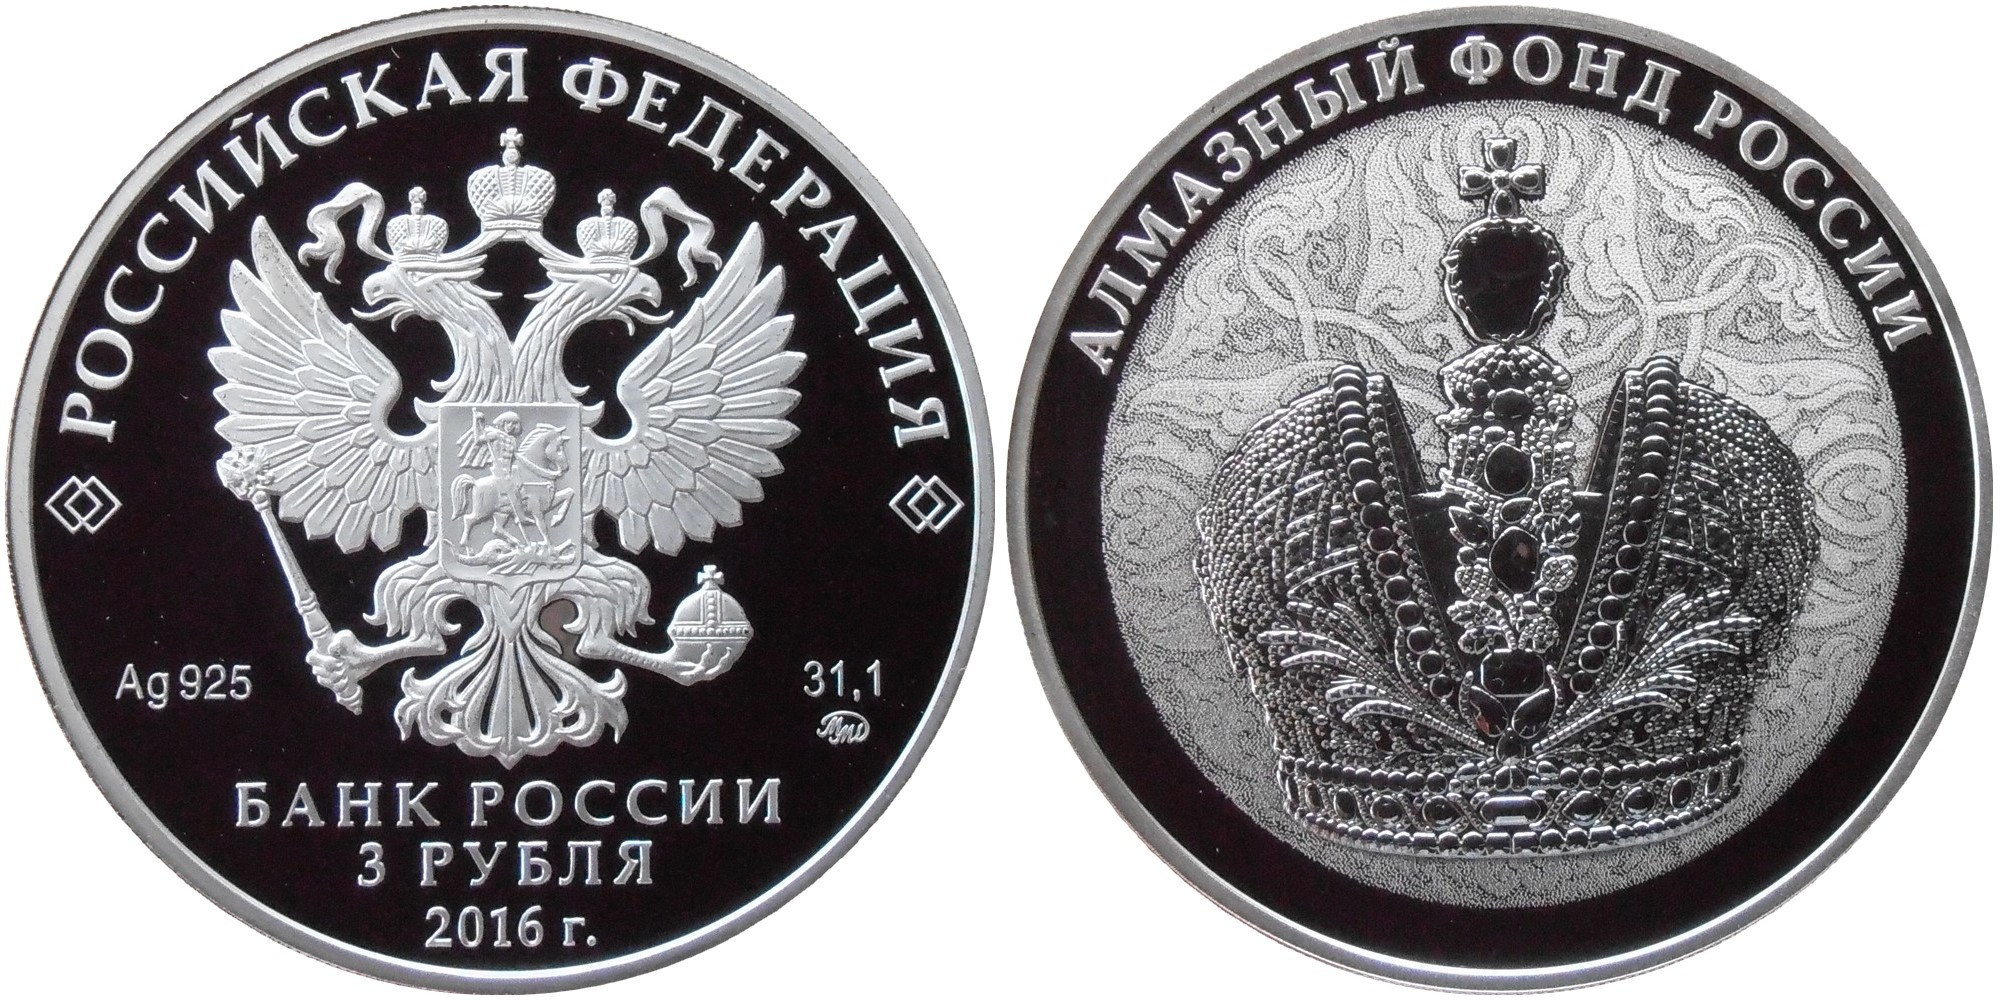 RUSSIE 3 ROUBLES 2016 - DIAMANTS DE RUSSIE : COURONNE IMPERIALE